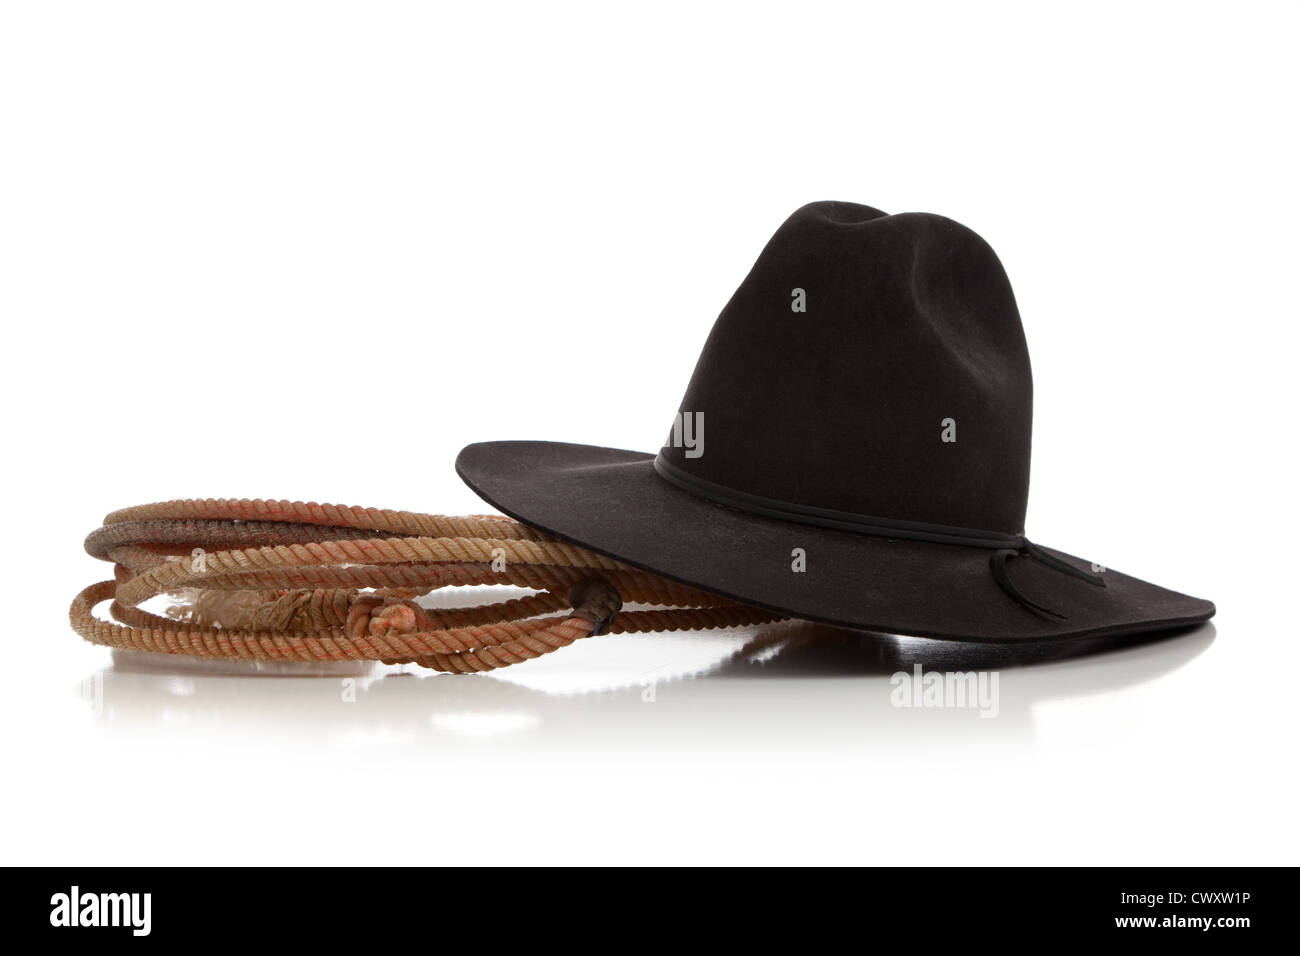 bc59766cdcdd6 A lasso and black felt cowboy hat on a white background Stock Photo ...